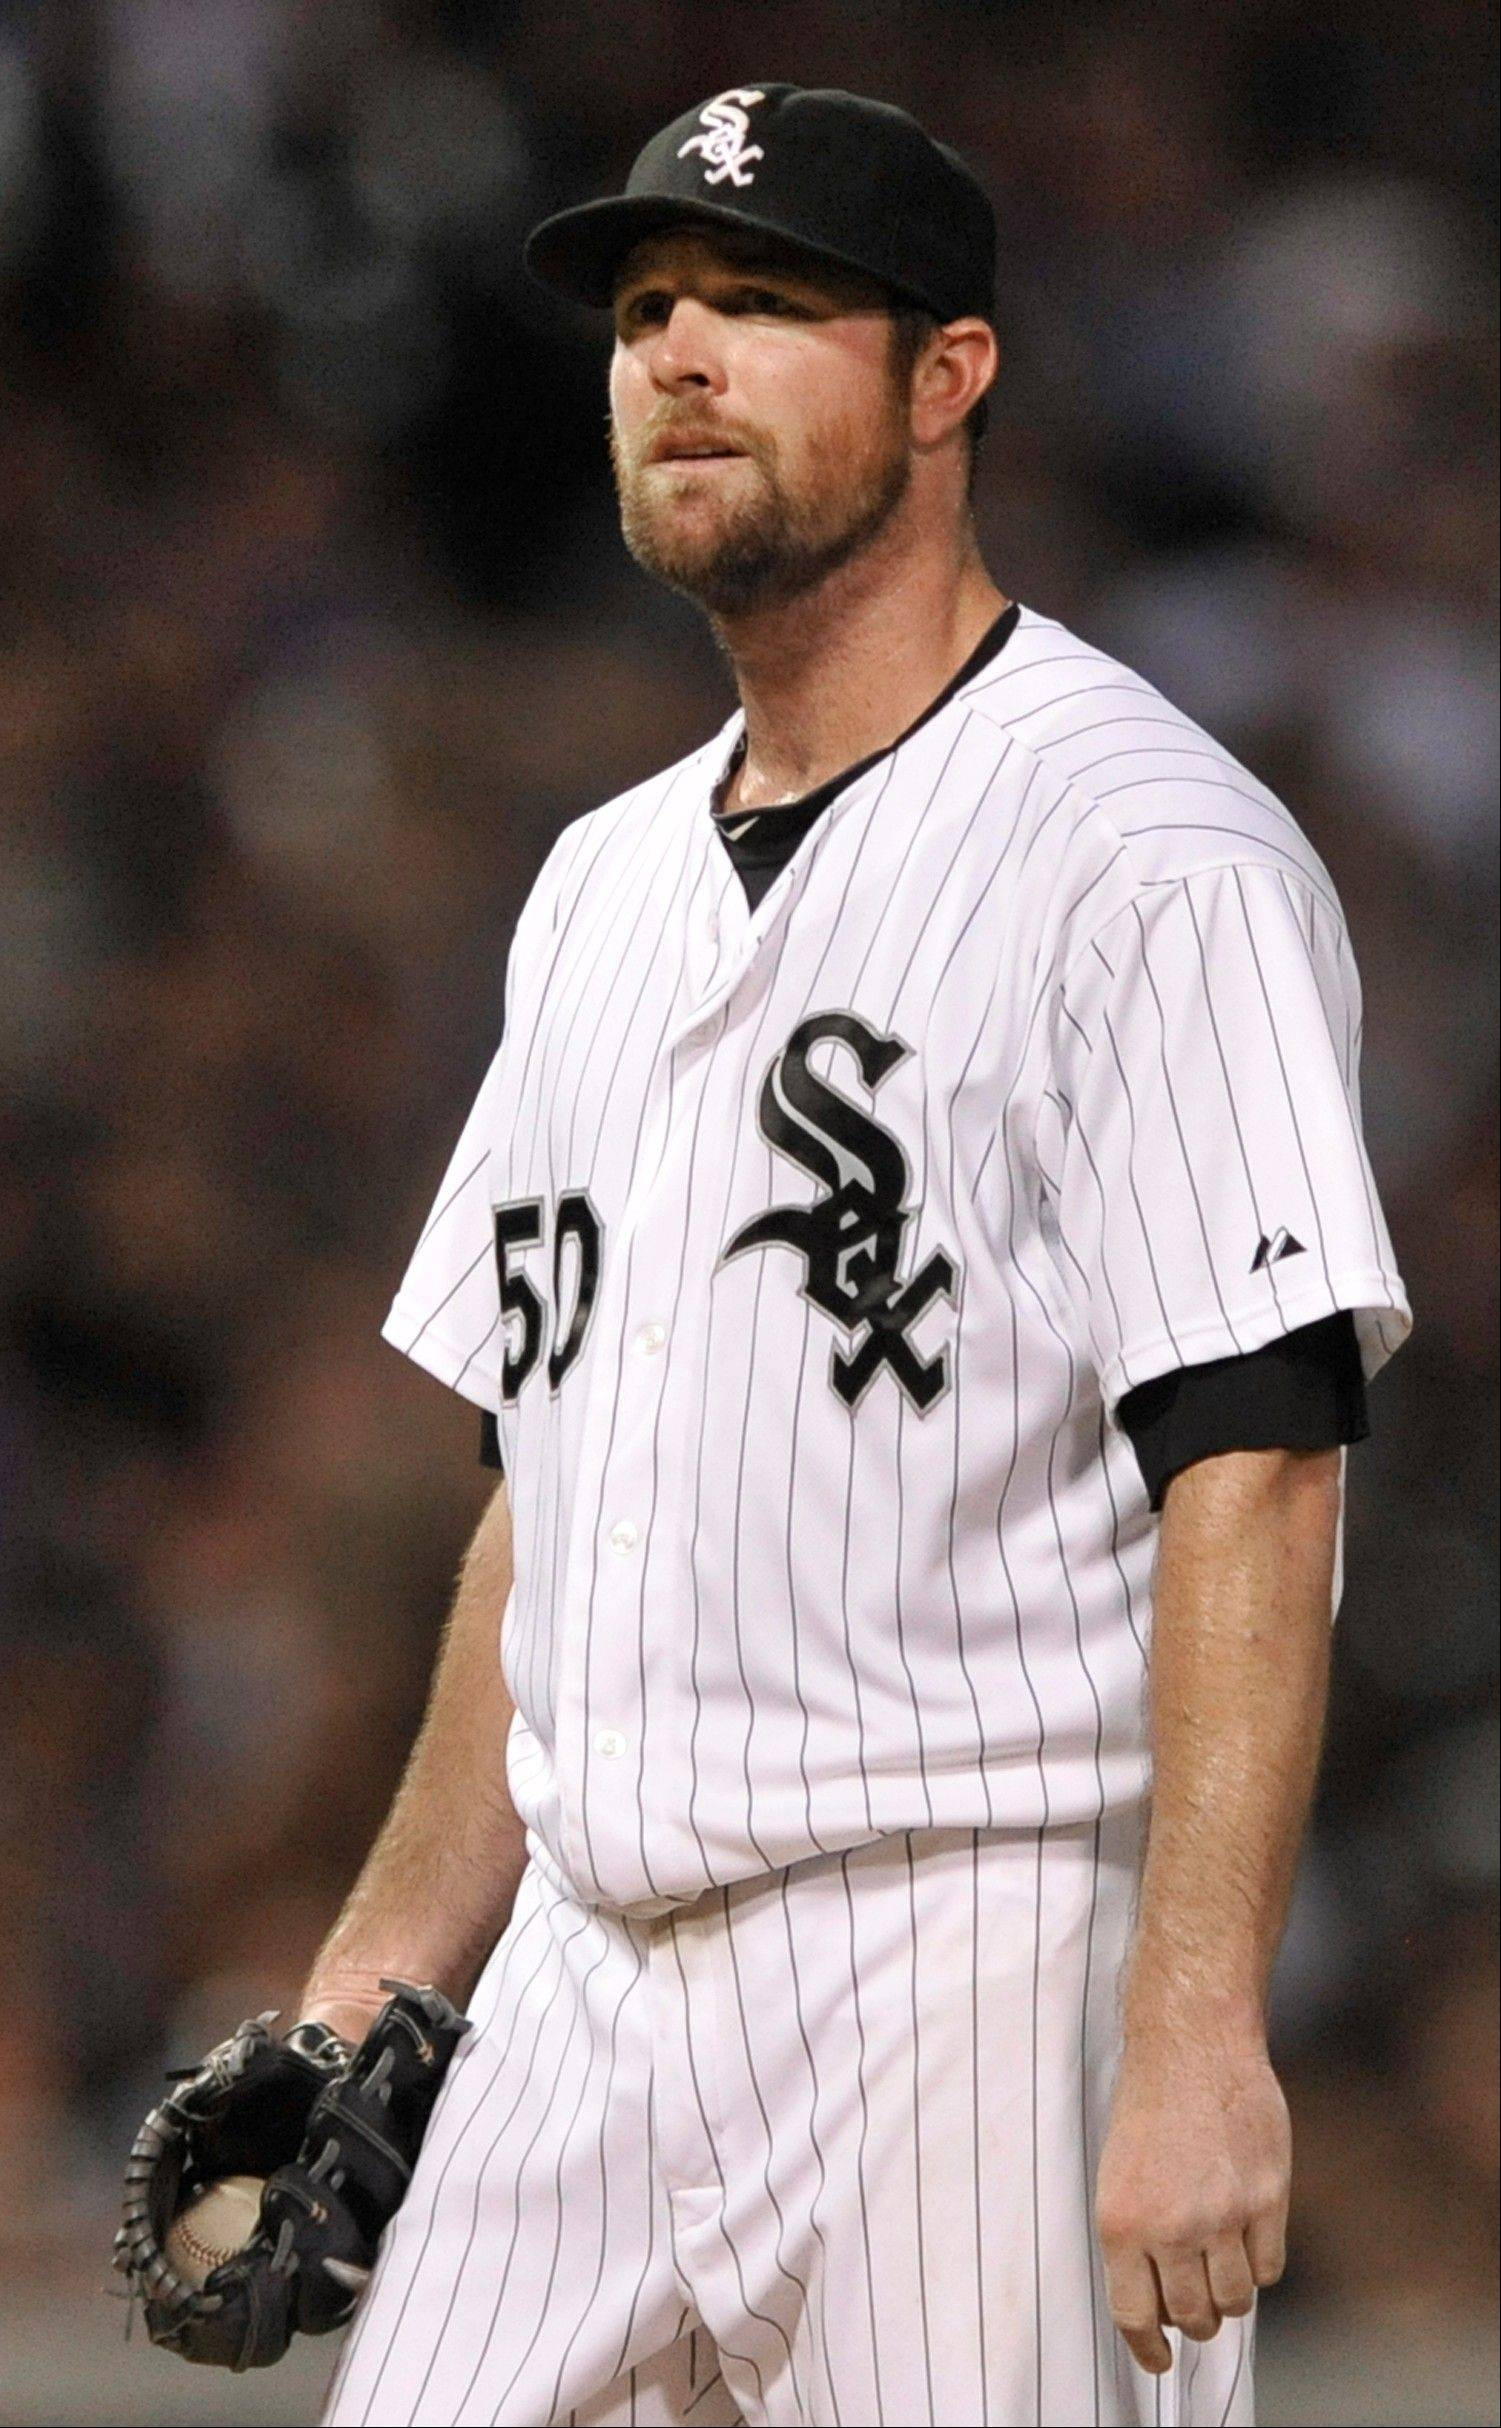 John Danks reacts to giving up a 3-run home run to Atlanta�s Brian McCann during the sixth inning of the White Sox� loss at U.S. Cellular Field on Friday.